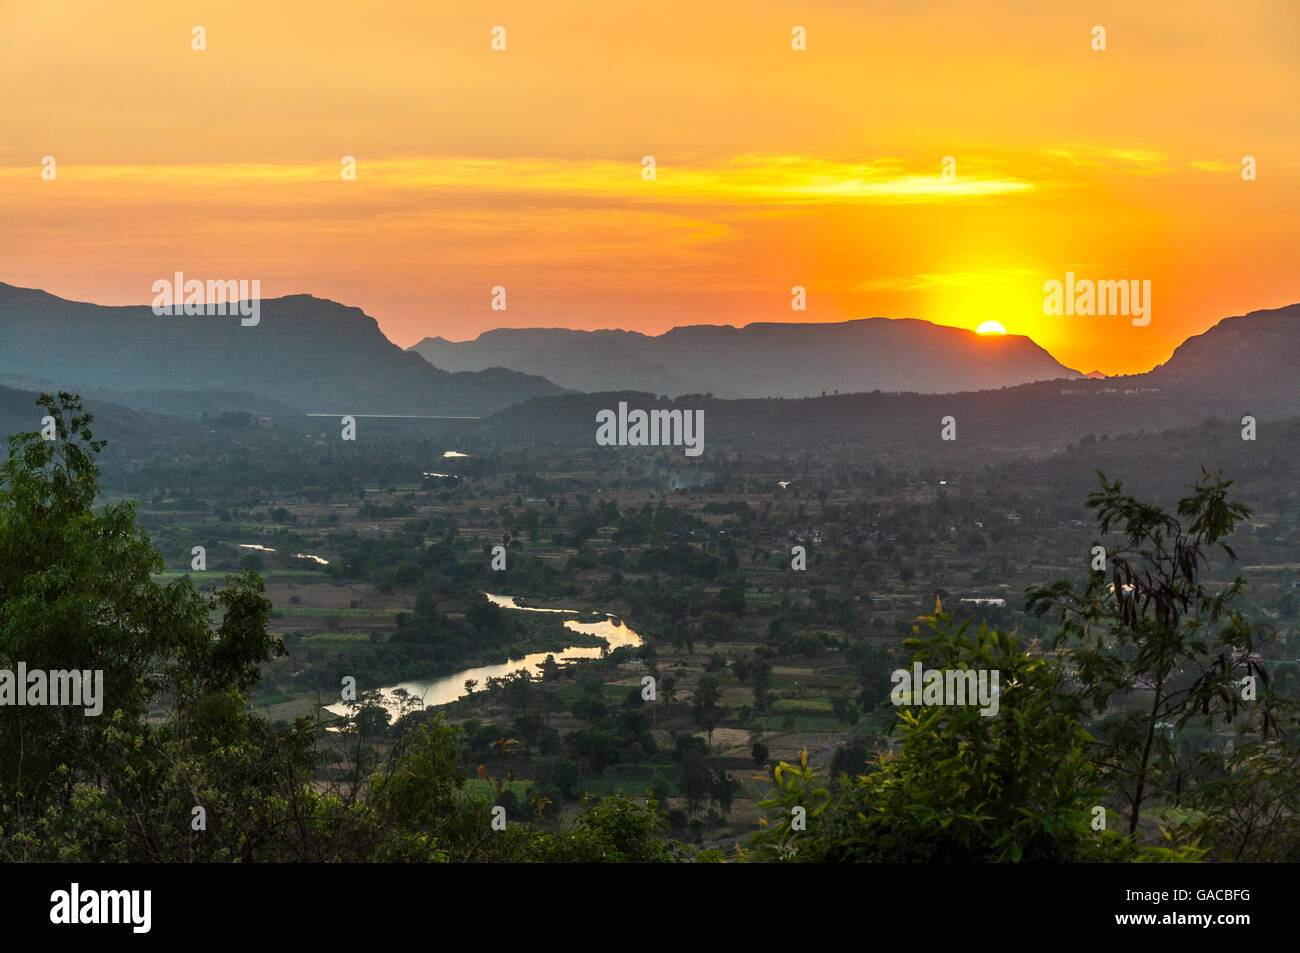 Sunset over Mulshi Valley and River Mula near Paud, Maharashtra, India - Stock Image